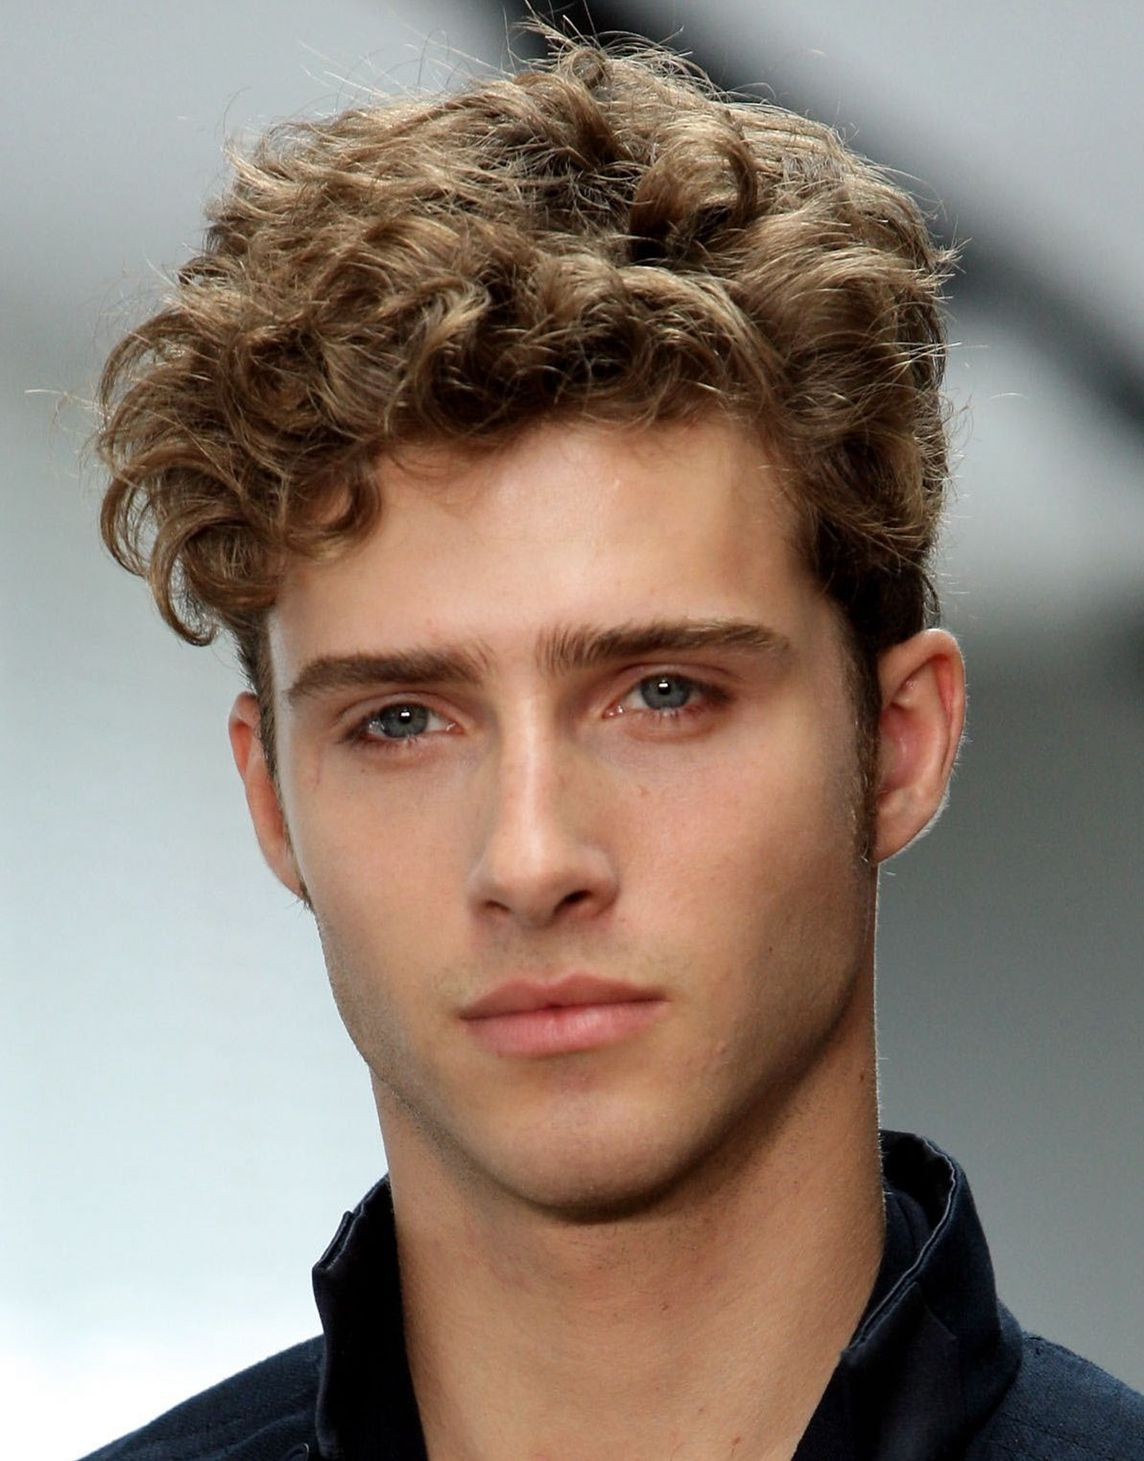 Hairstyles For Men With Curly Hair Unique Hairstyle Long Hair Styles Hairstyles  Style  Pinterest  Long